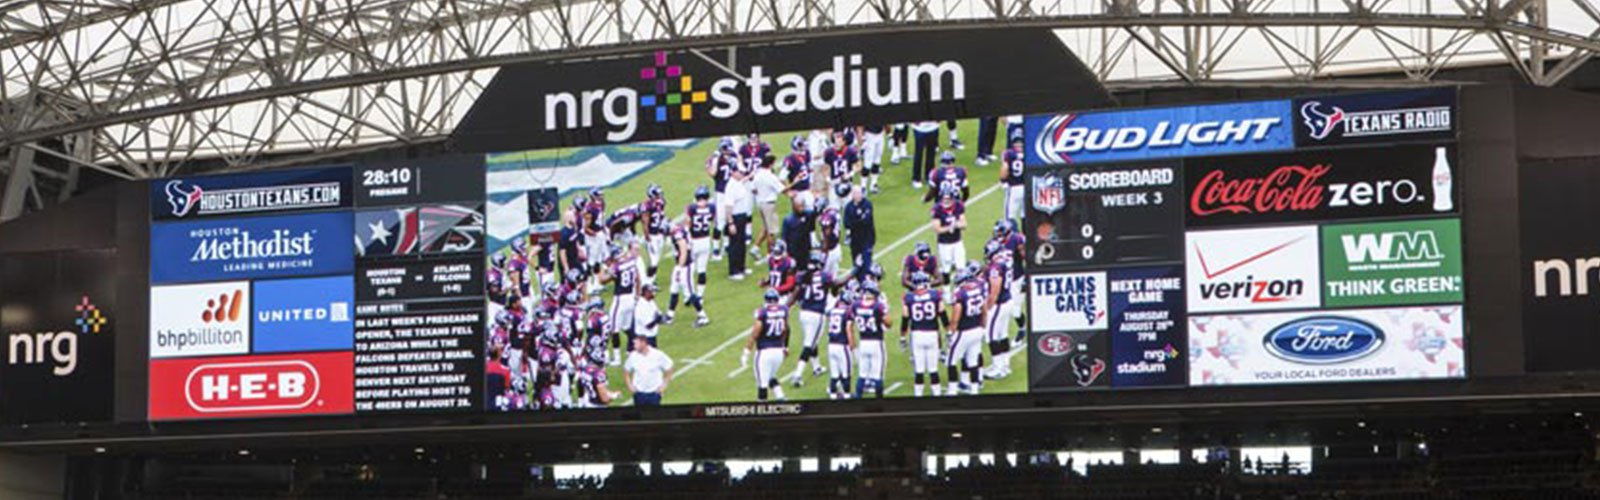 NRG Stadium scoreboard and video display (background)